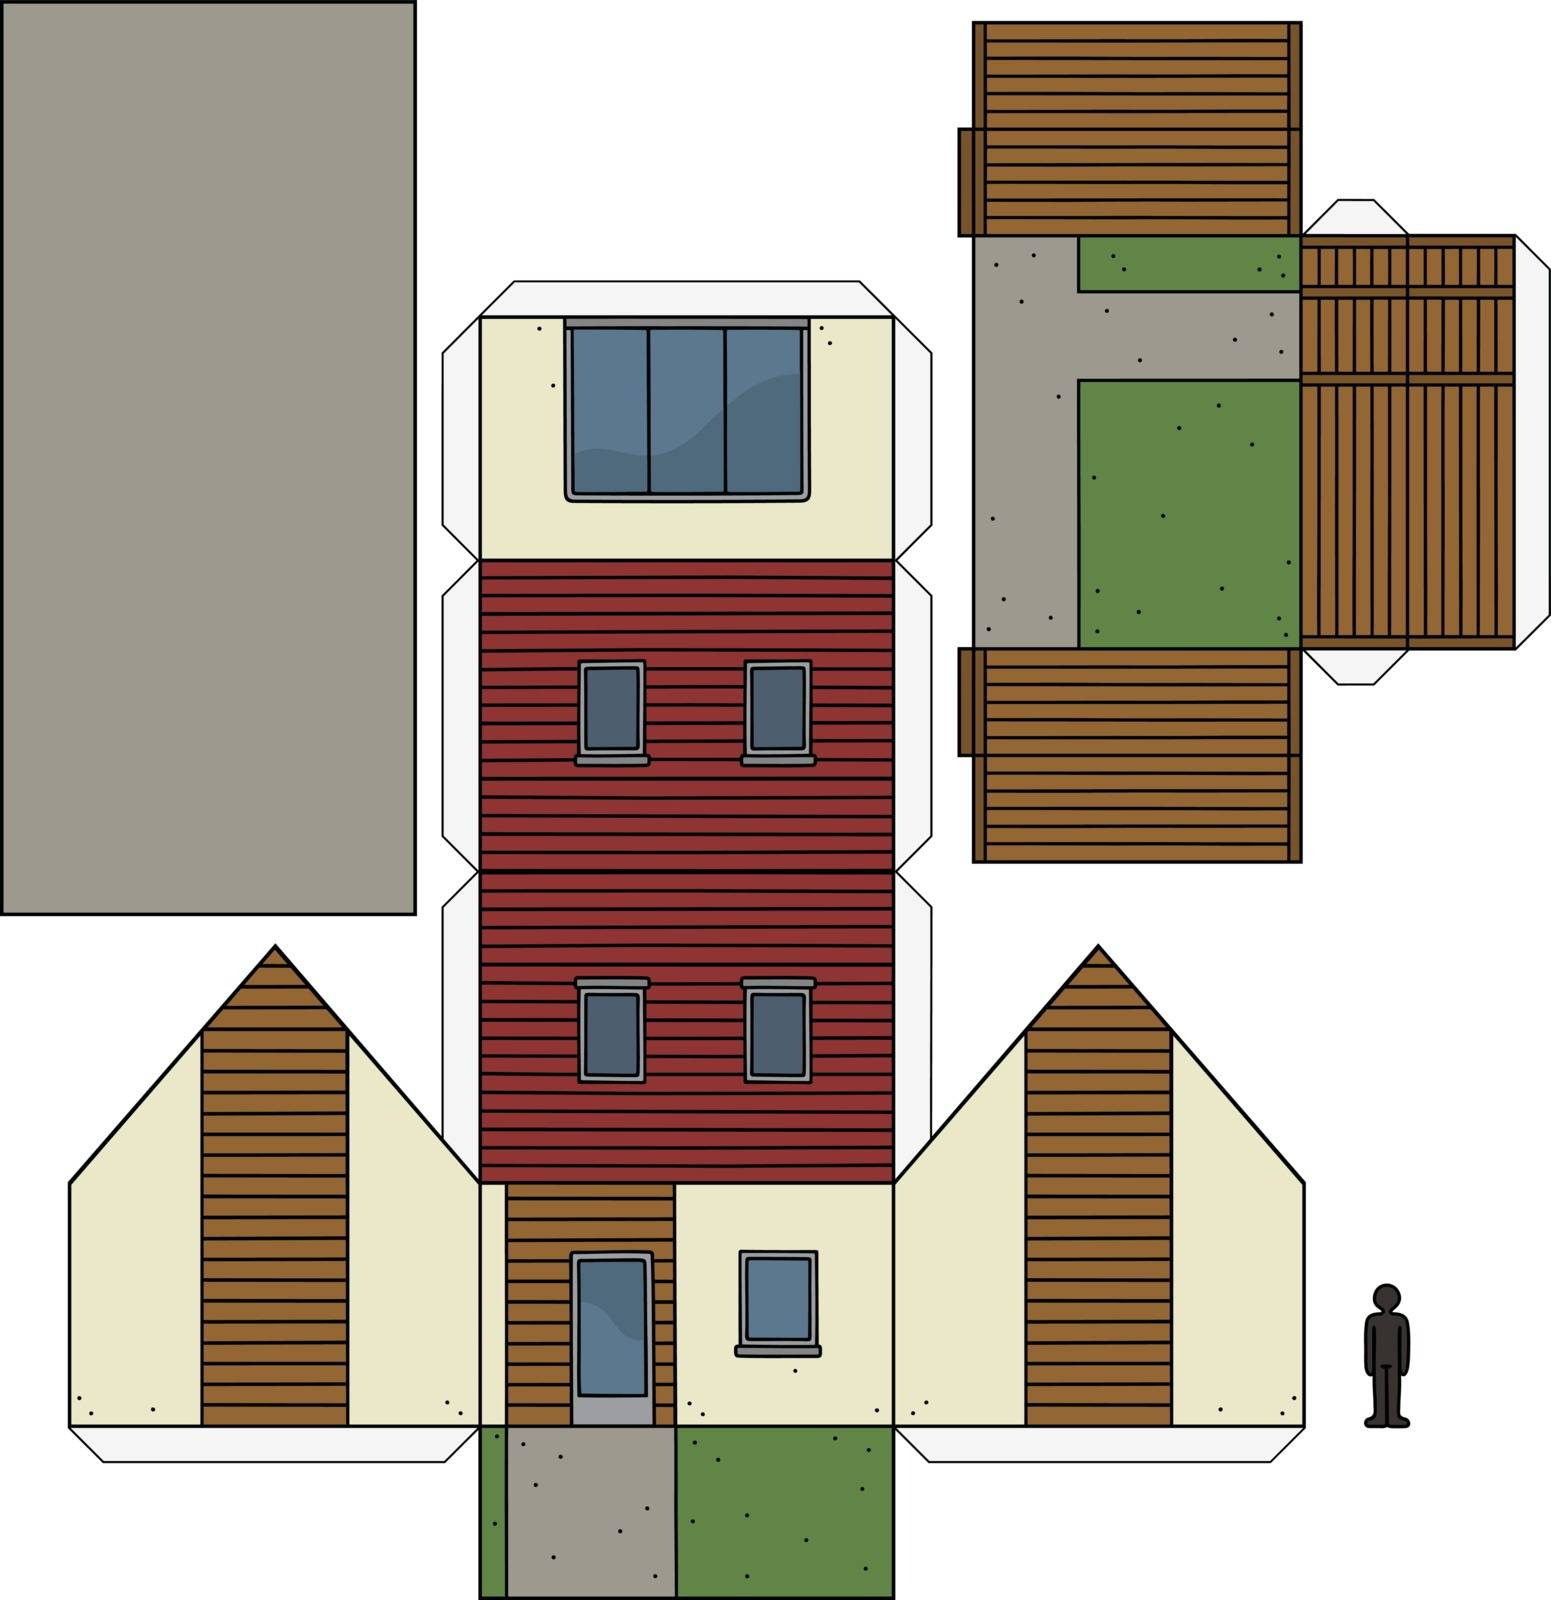 The paper model of a modern small house